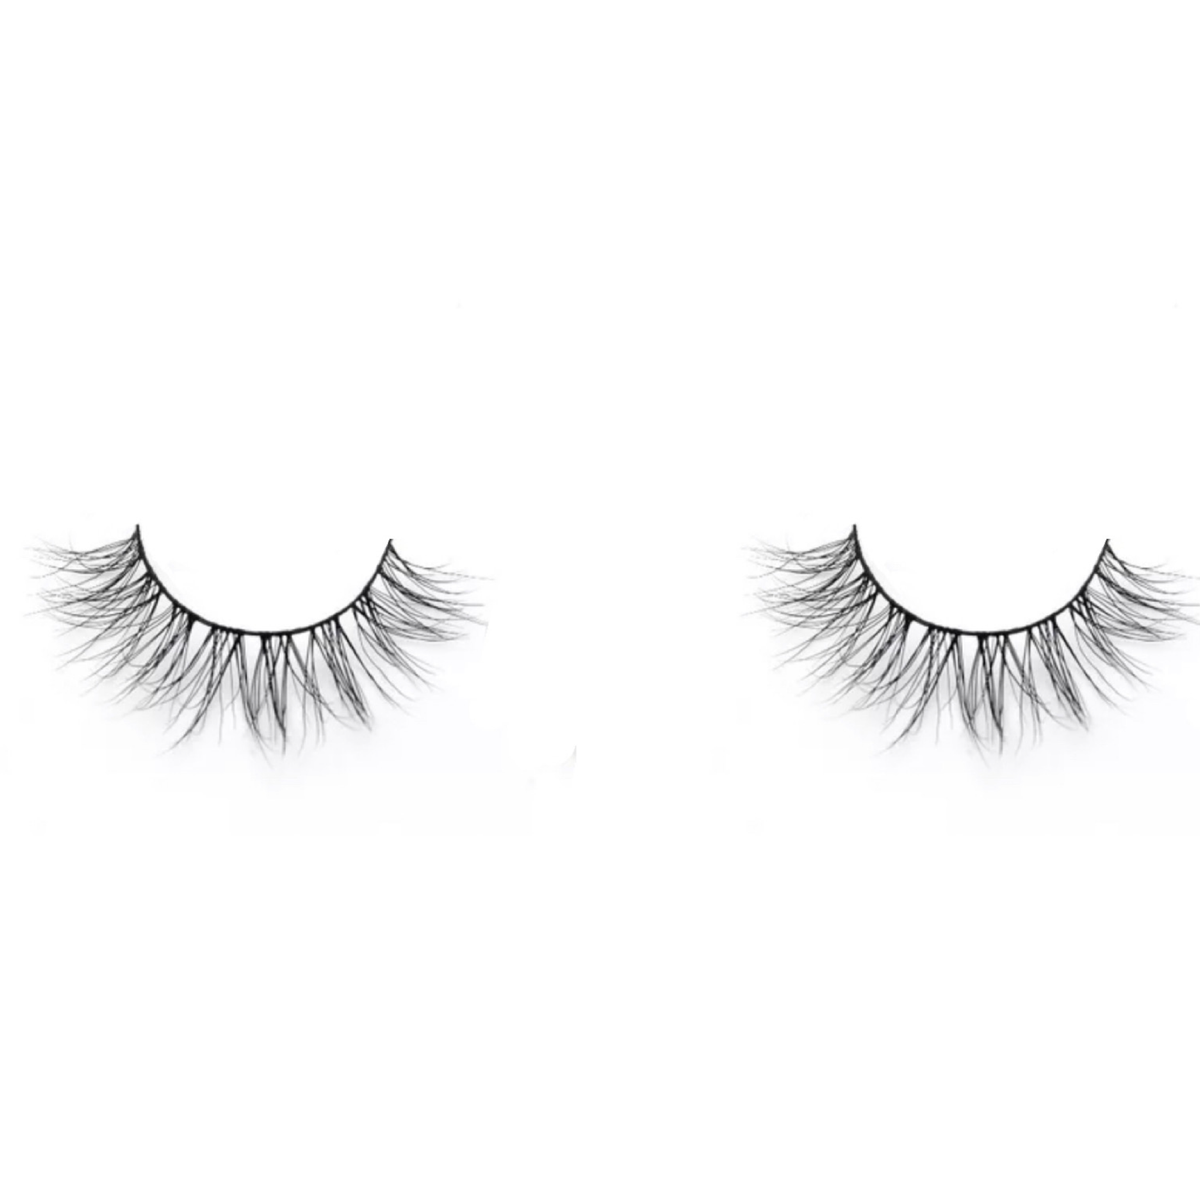 Mink Eyelashes Every Day Lashes - lexinoelbeauty.com